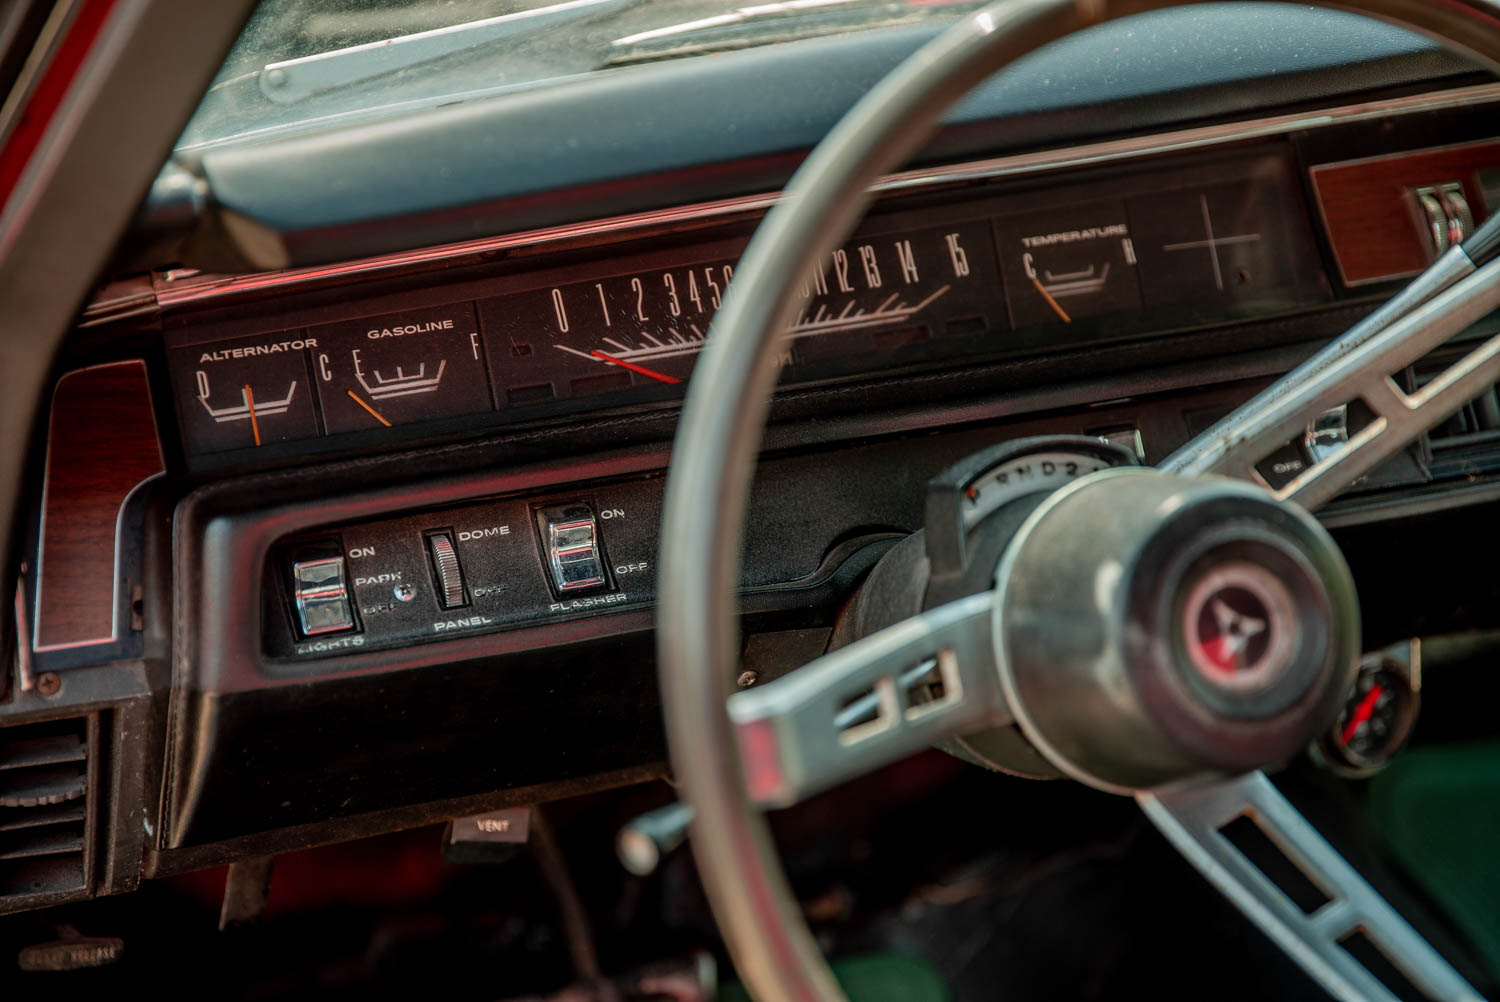 1969 Plymouth GTX gauges